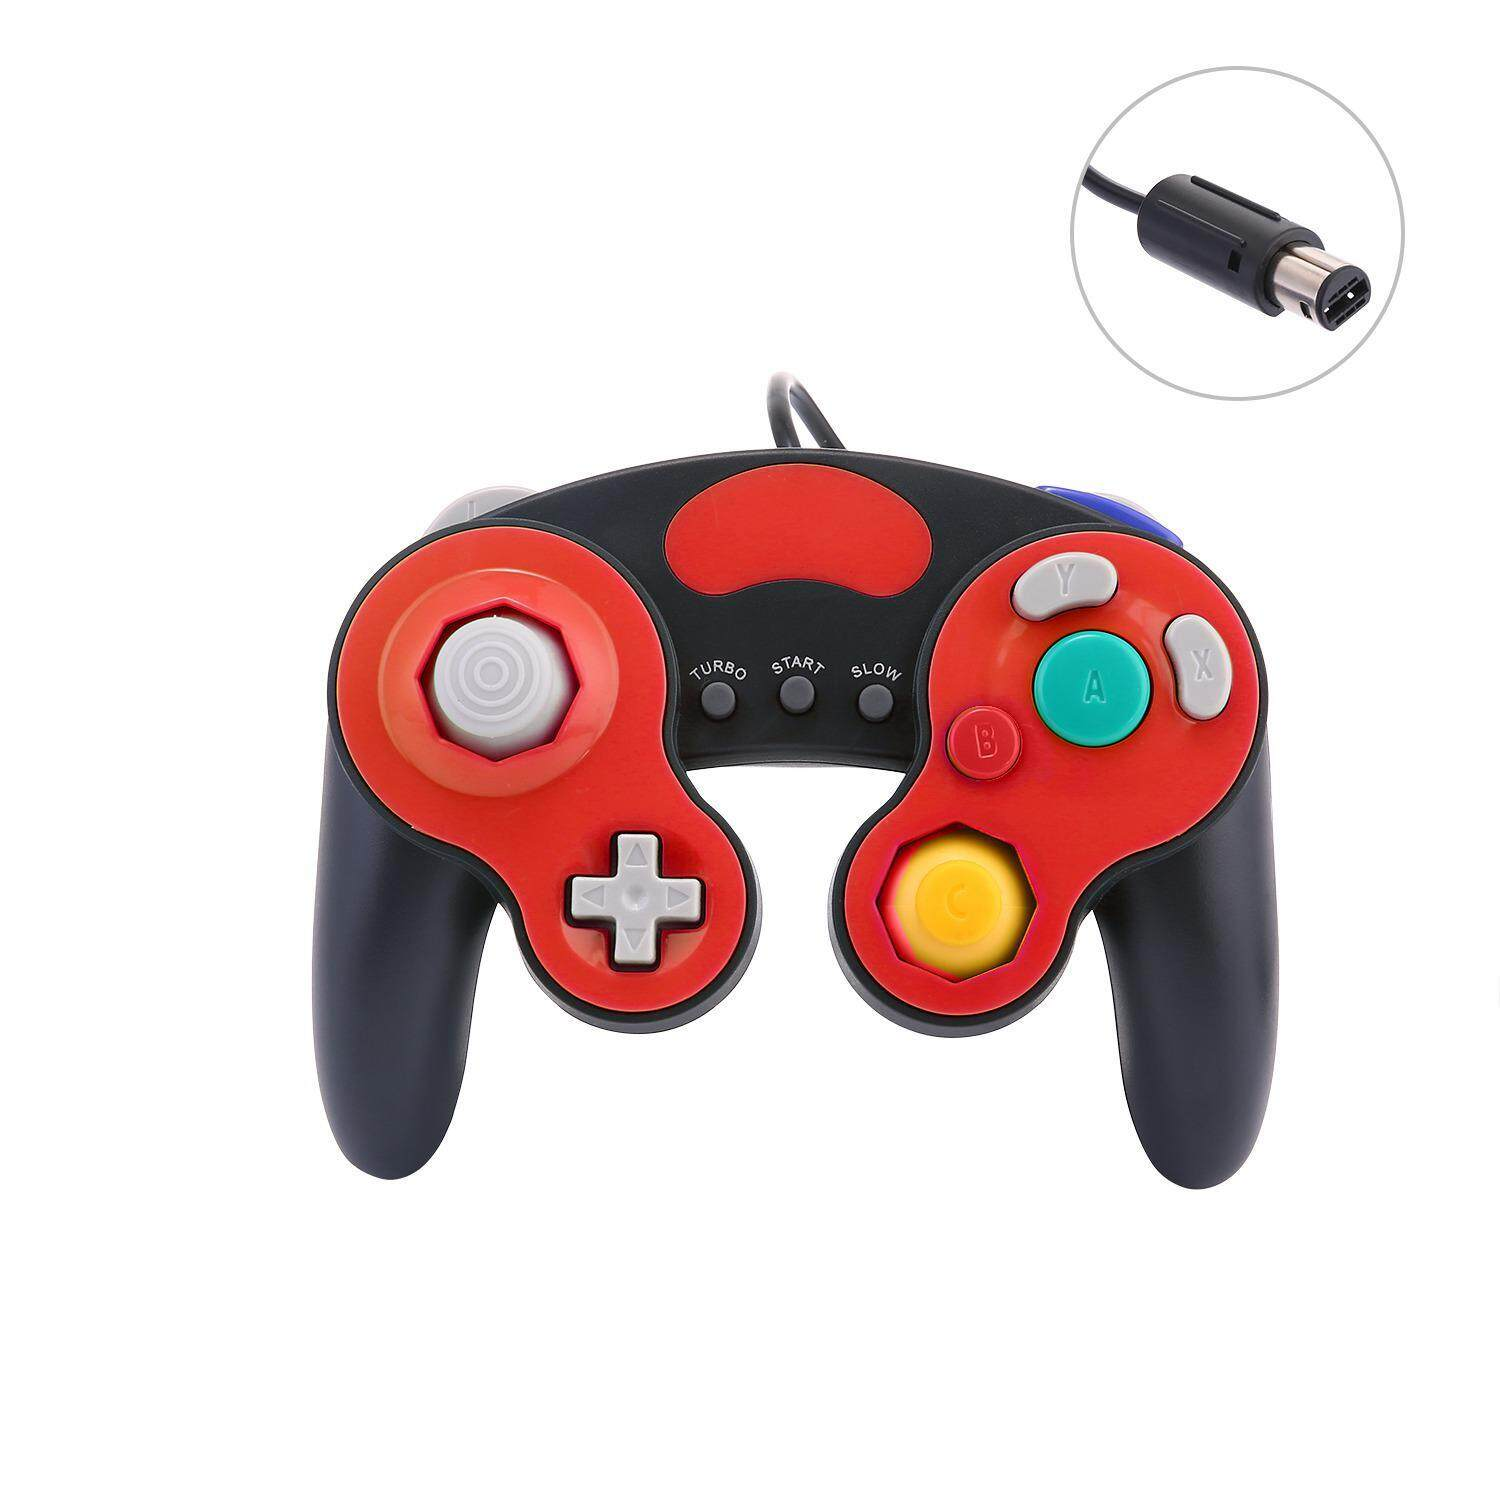 GoodGreat Game Controller, Wired Controller Handhel For Wii Nintendo Gamecube